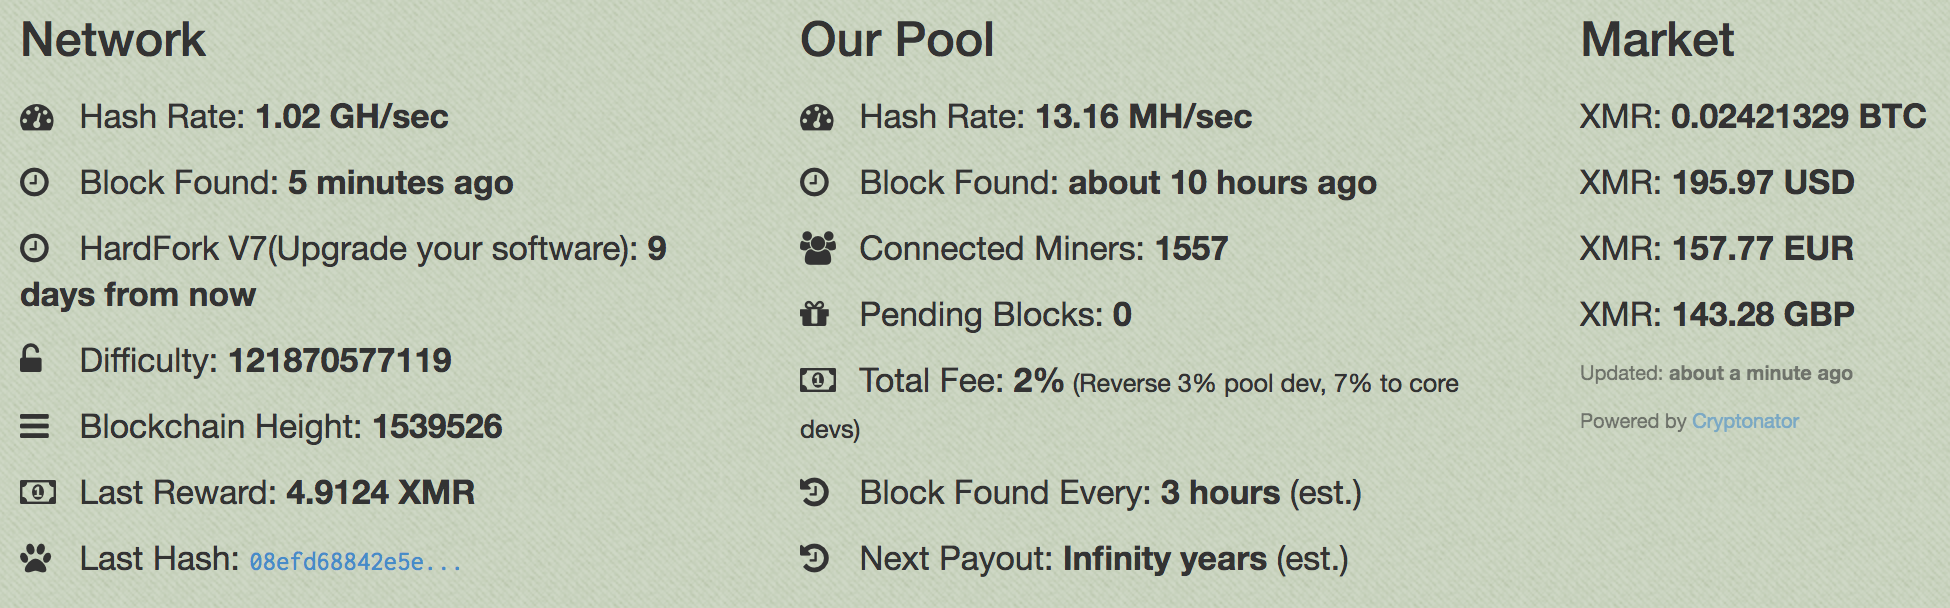 monero.crypto-pool.fr mining pool